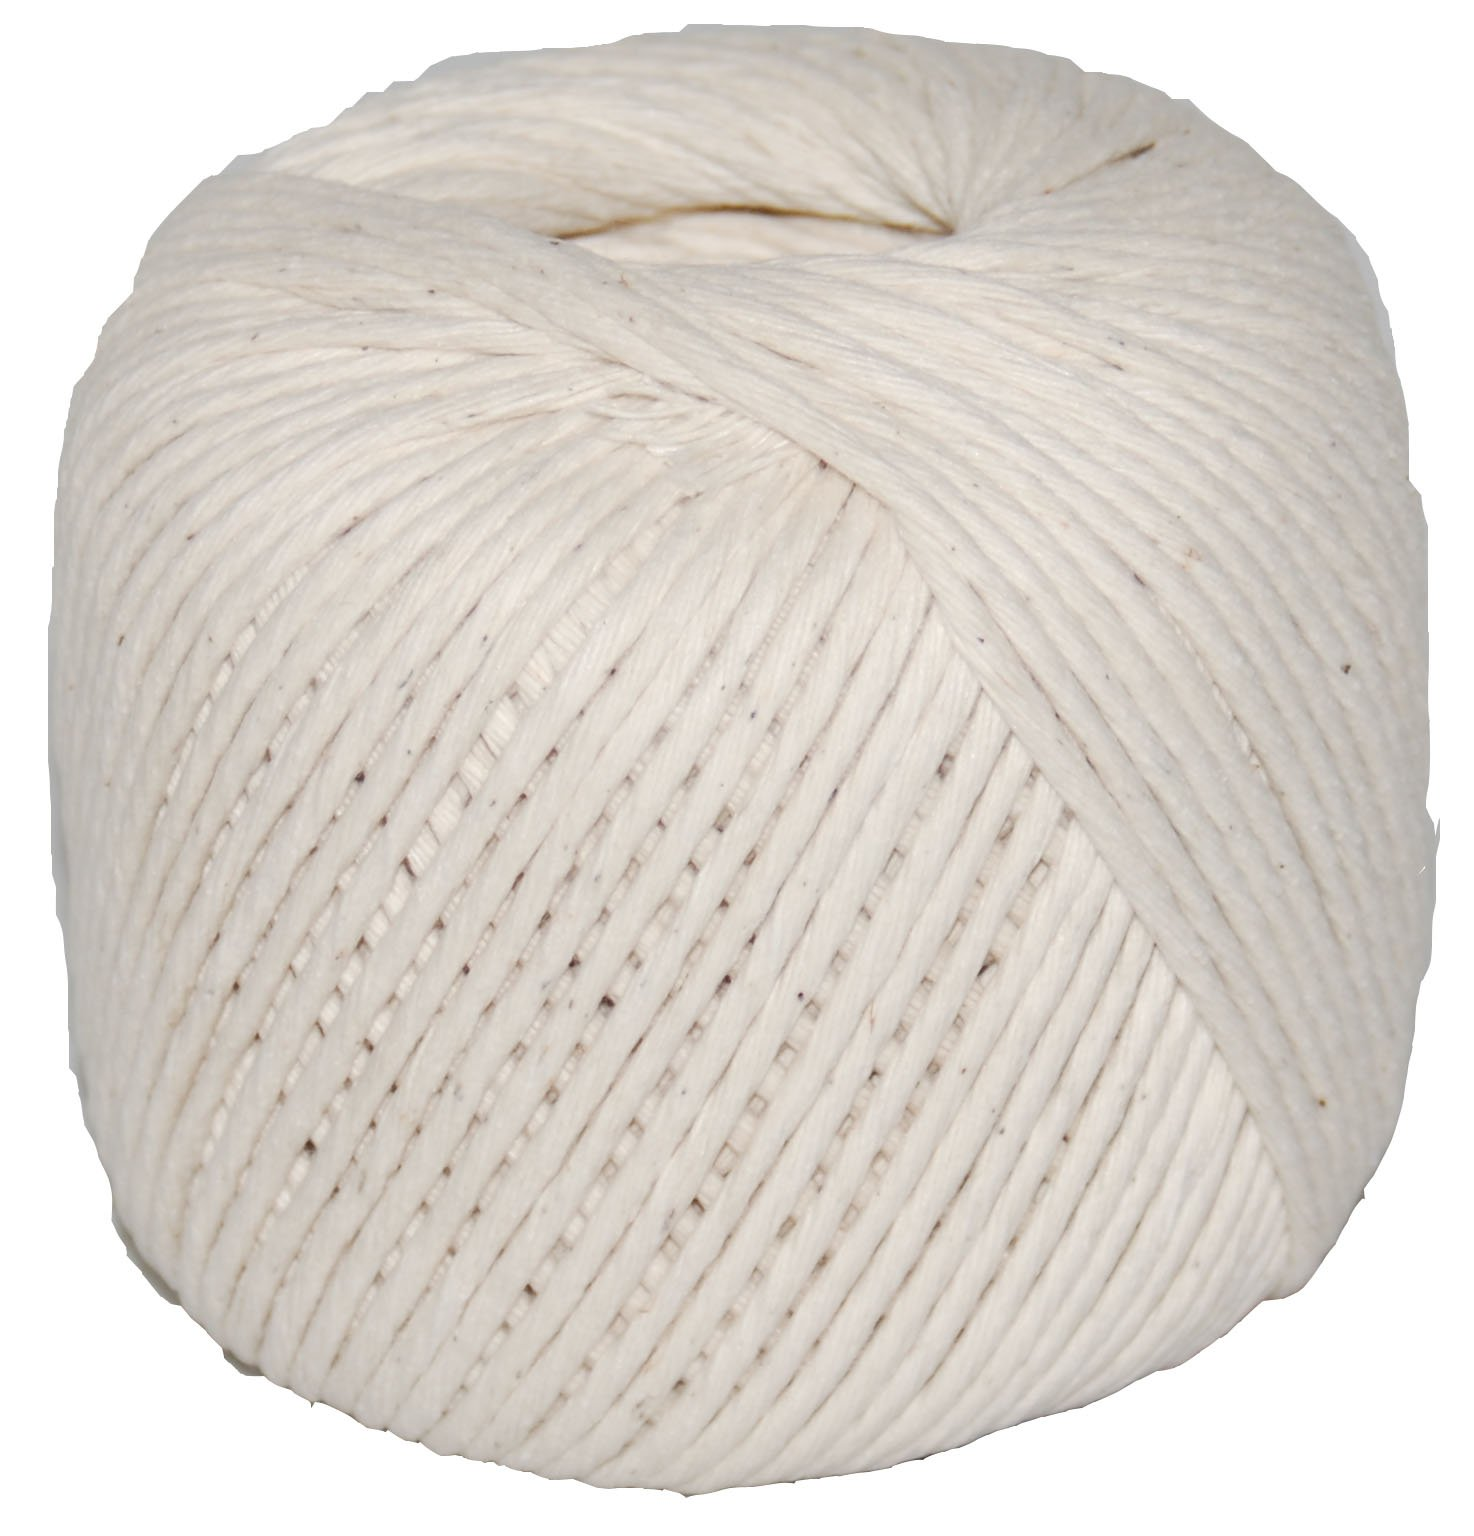 T.W . Evans Cordage 09-368 Number-36 Polished Beef Cotton Twine with 400-Feet Ball by T.W . Evans Cordage Co.